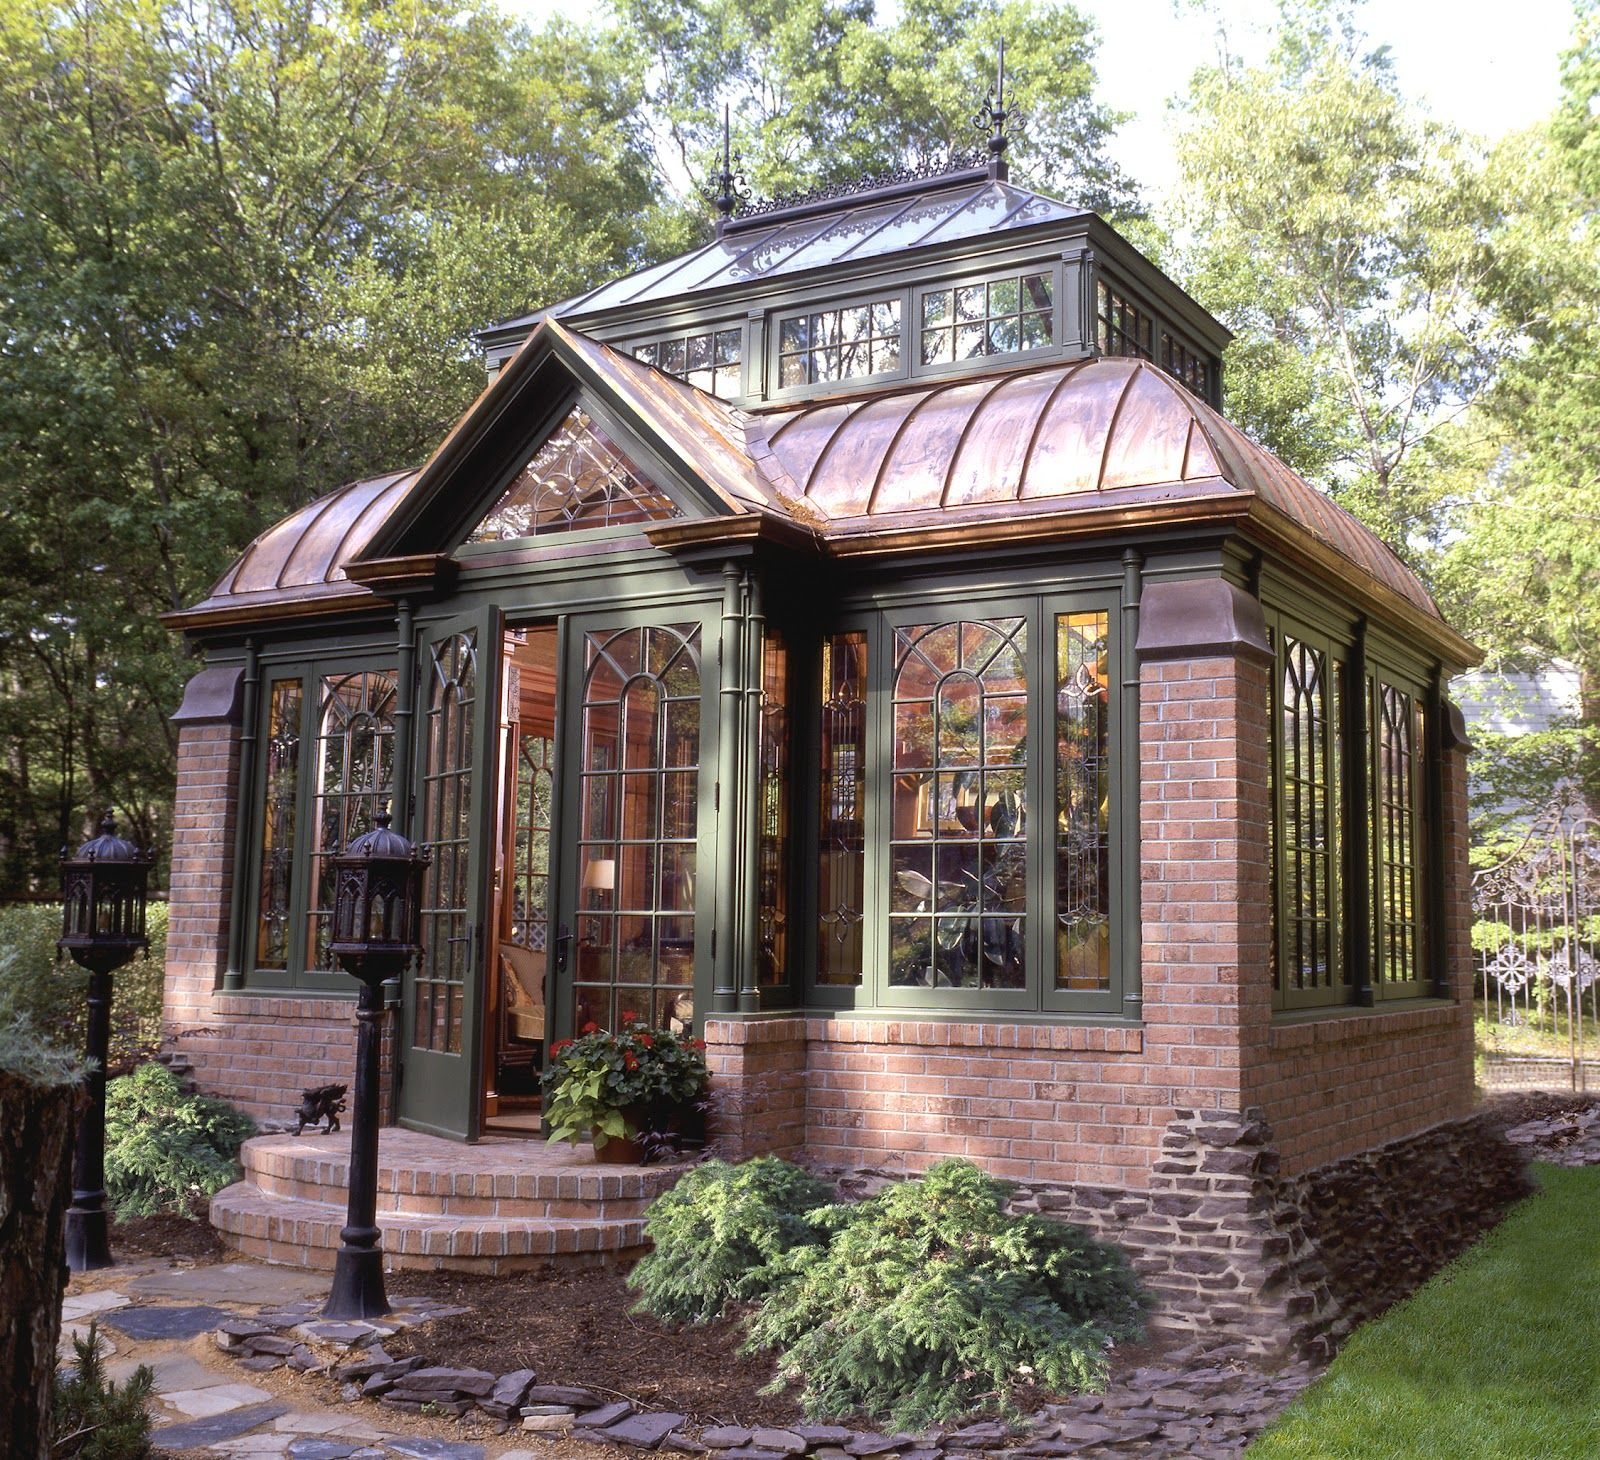 Conservatory The Metzler S Conservatory By Tanglewood Conservatories Maison Jolie Maison Petite Maison